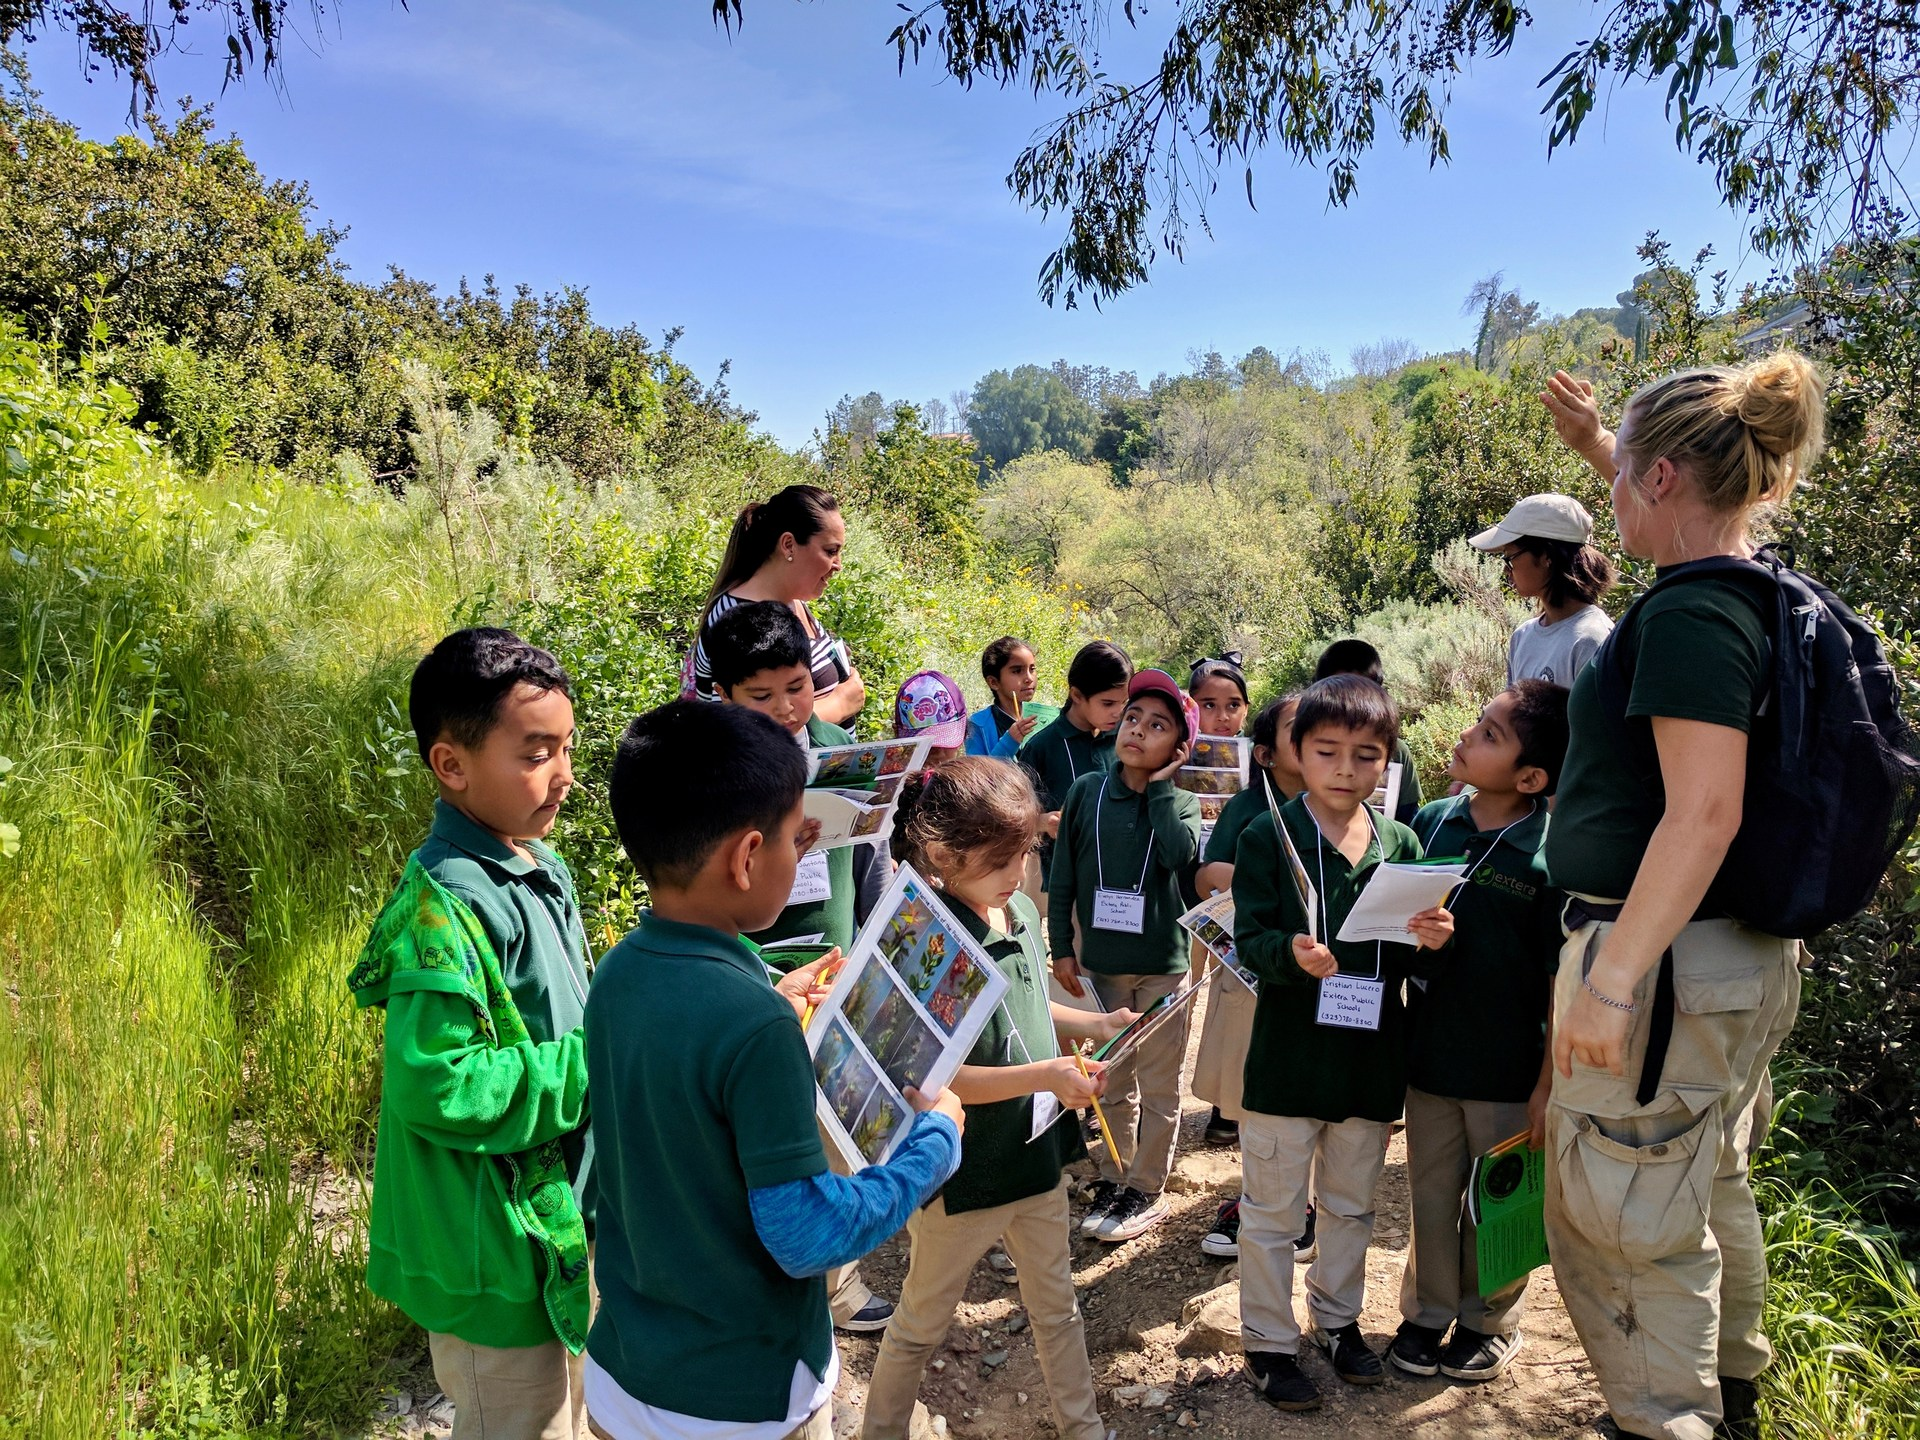 teacher leads students in a nature lesson